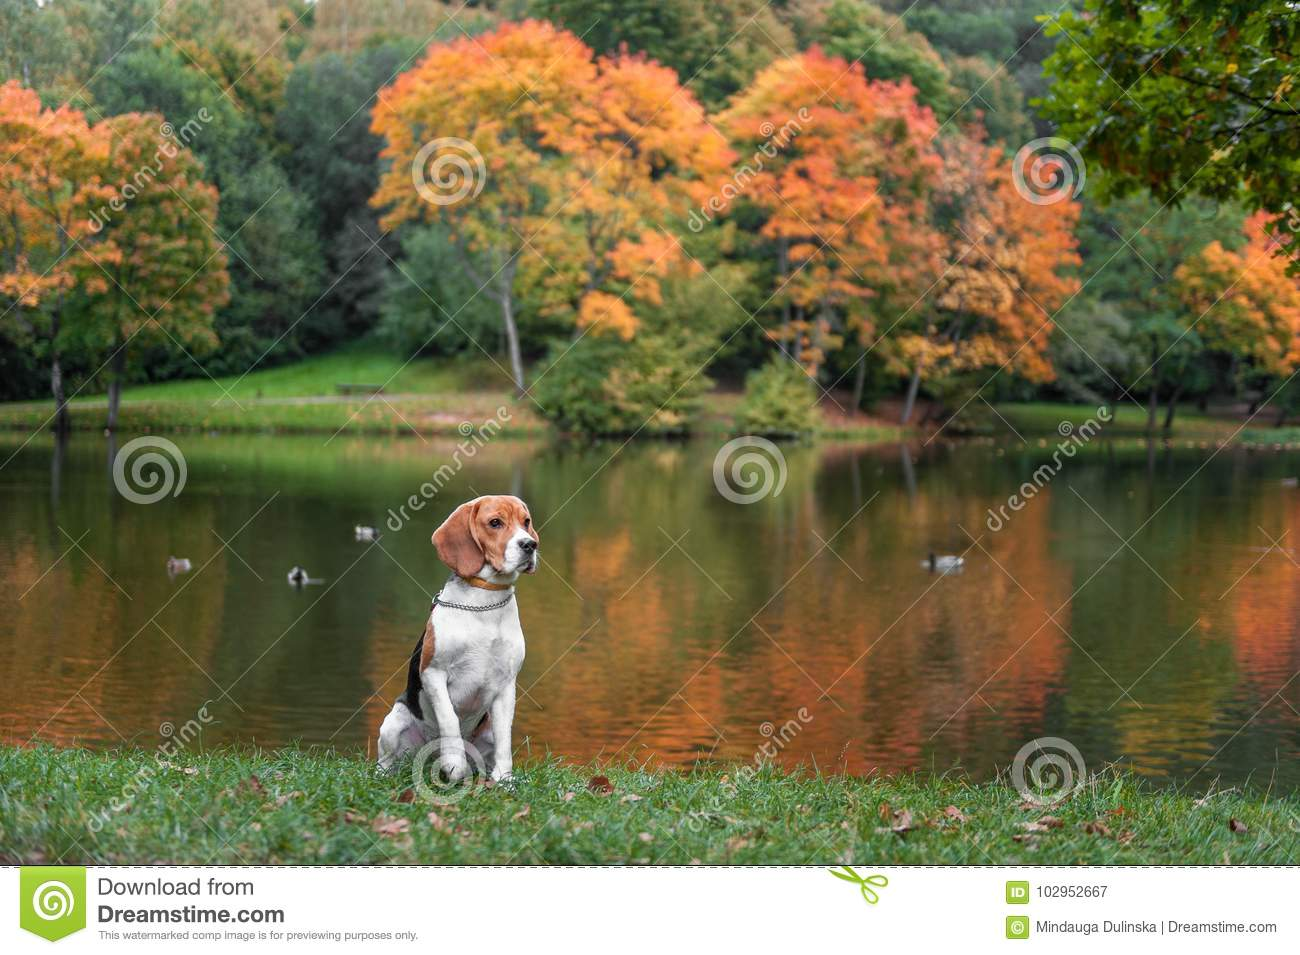 Beagle Dog Sitting on the grass. Autumn Tree Background. Water and Reflection. Duck in Background.